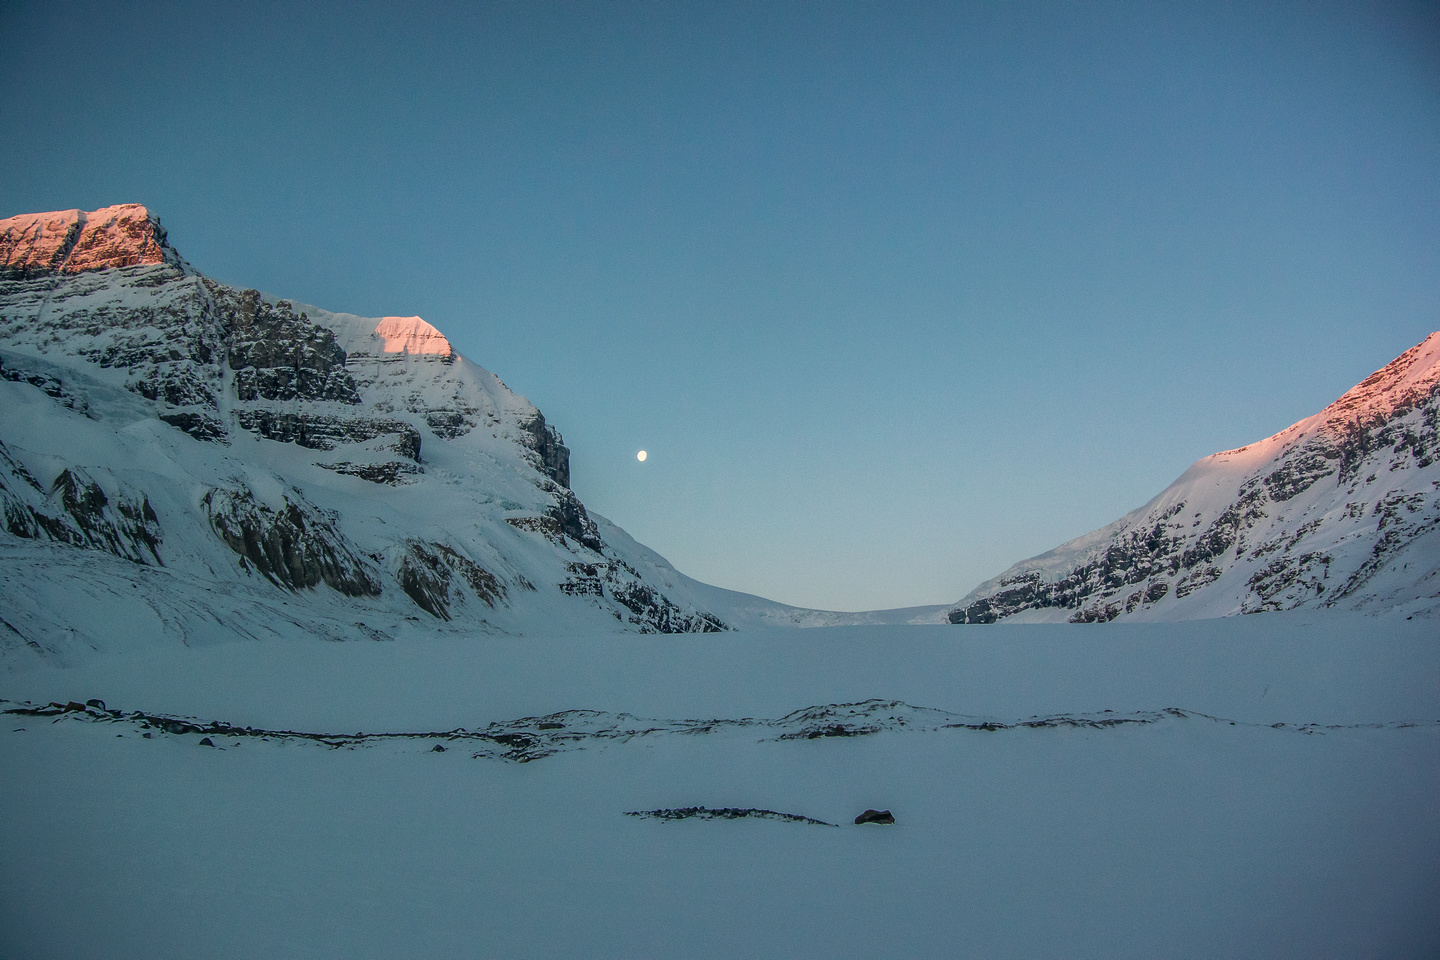 Leaving the toe of the Athabasca Glacier in perfect weather. Skyladder on Andromeda is lighting up on the left.